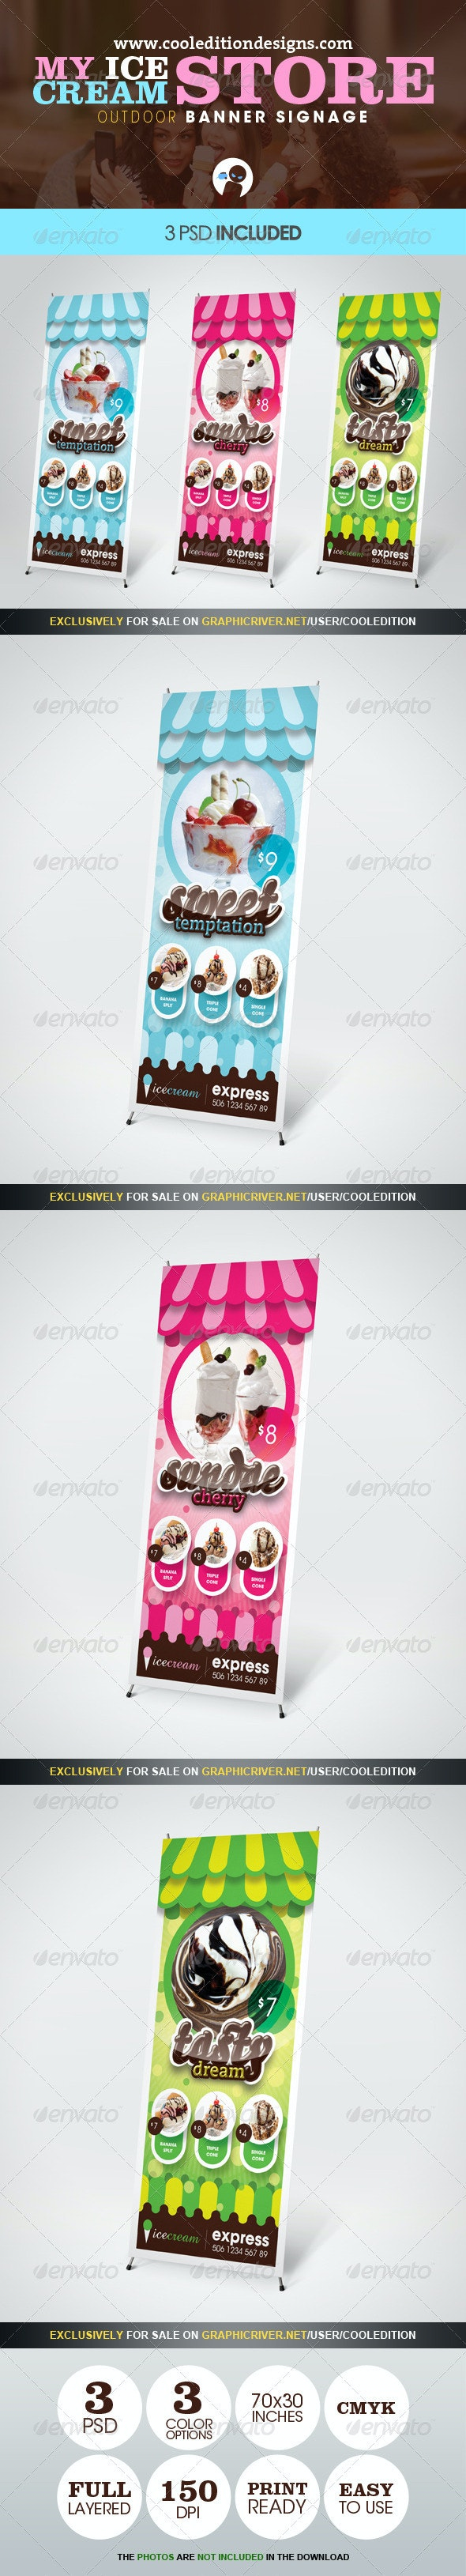 My Ice Cream Store - Outdoor Banner Signage - Signage Print Templates